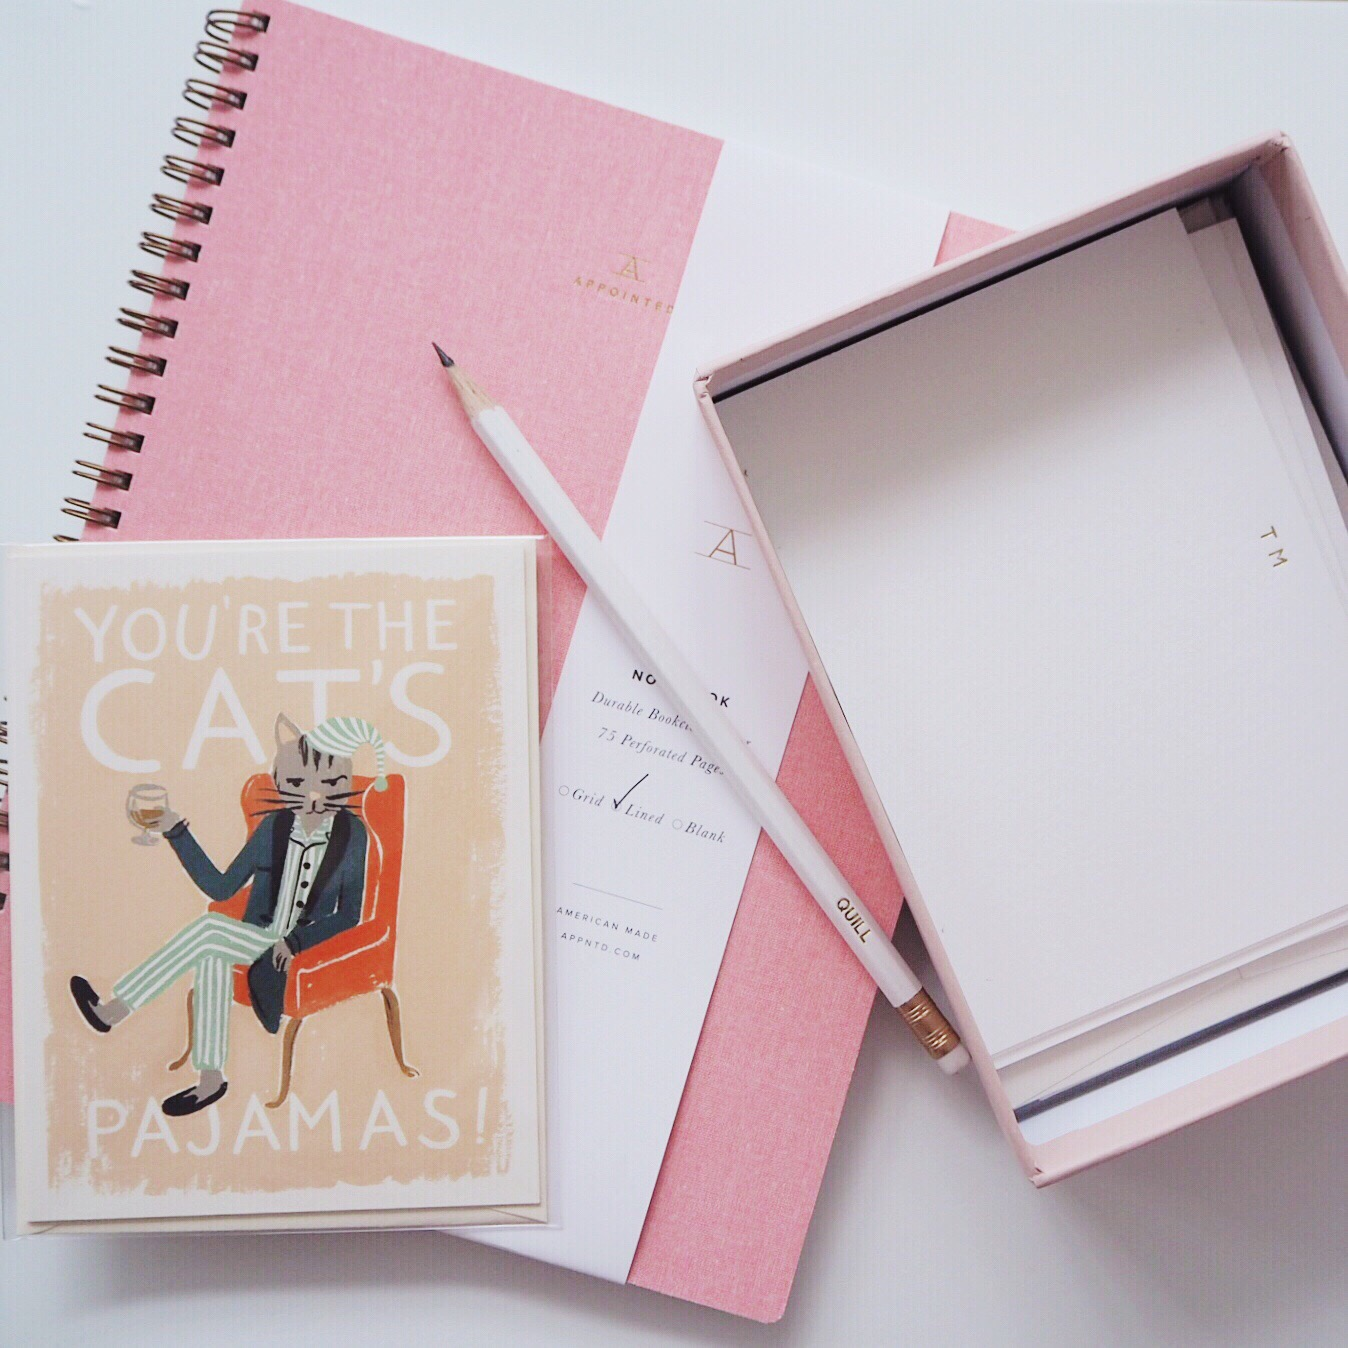 An evening with London Letters Club